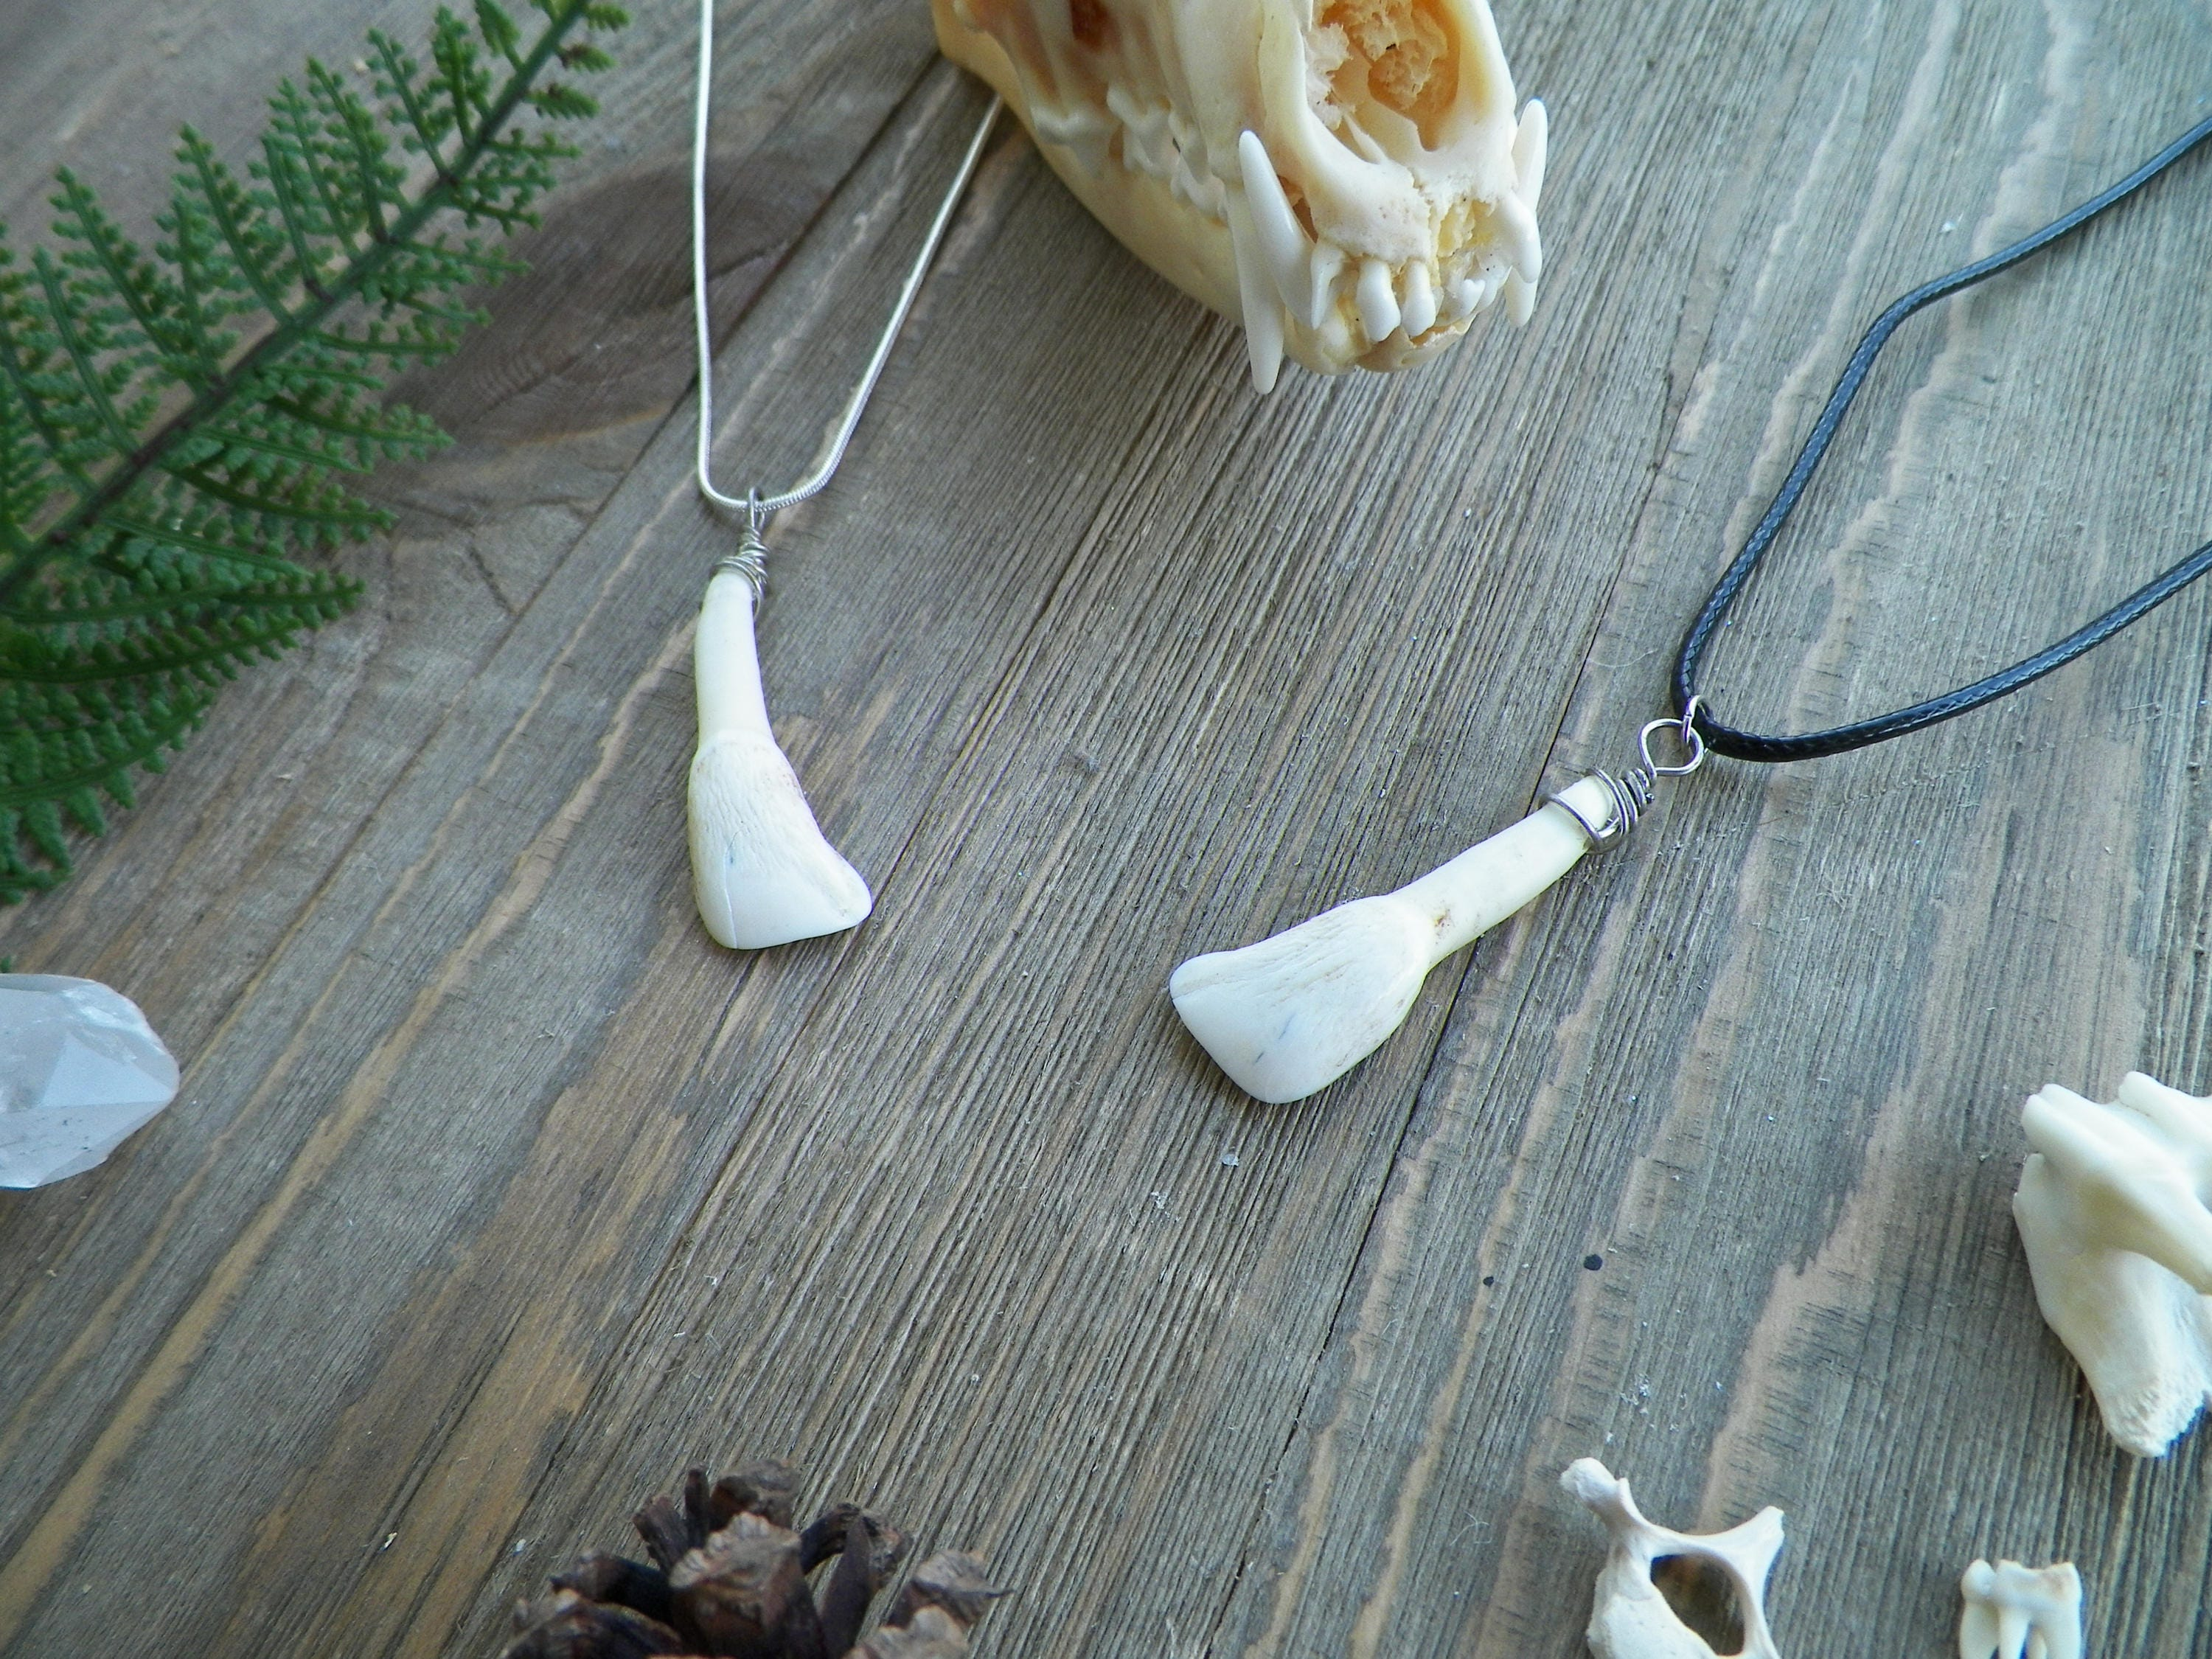 vulture culture oddities curio paws products paw curiousity real collections bone original mouse rat necklace skeleton jewelry